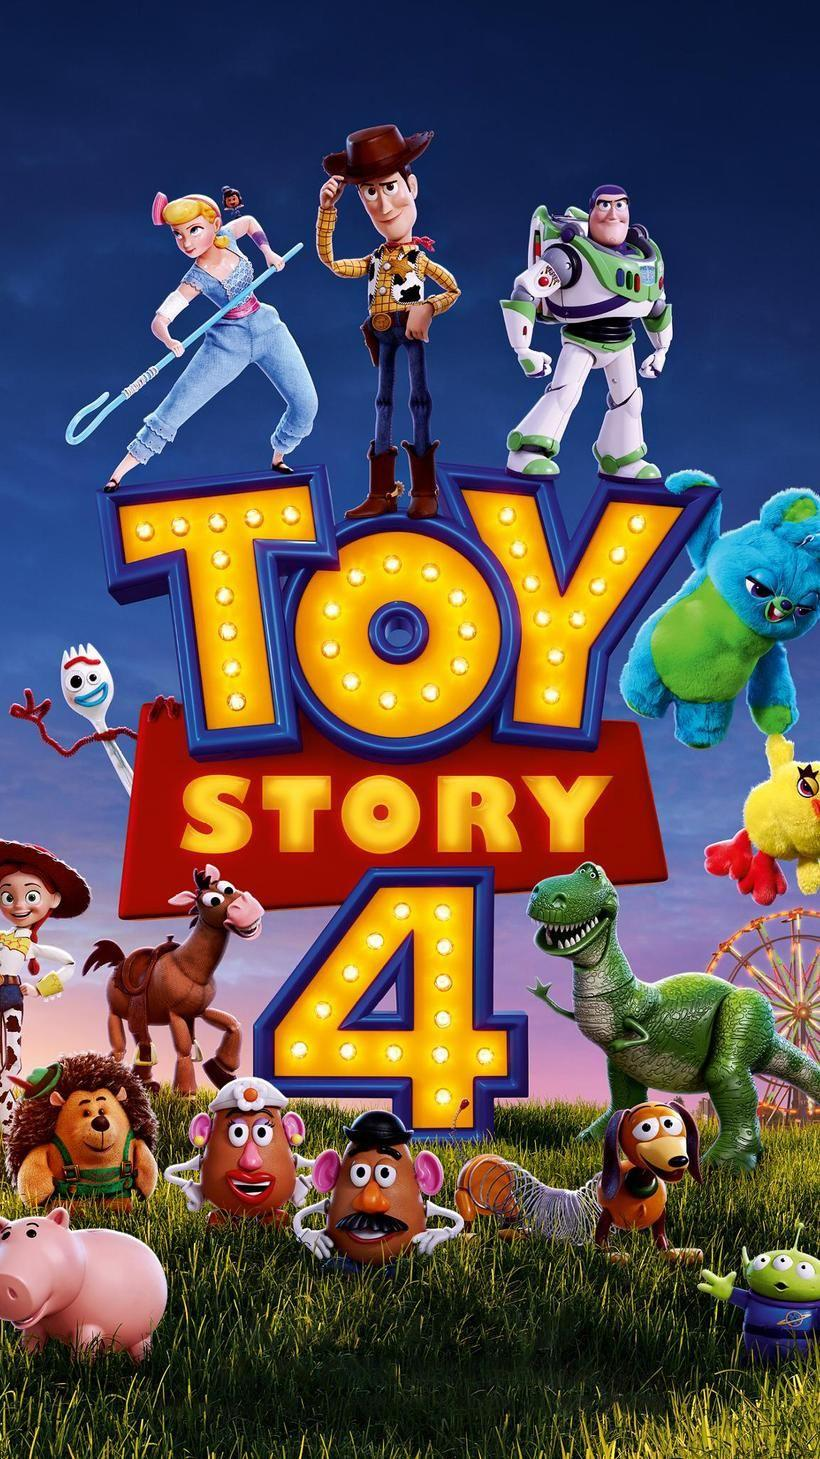 Toy Story 4 (2019) Phone Wallpaper | Disney | Movie posters, Toy ...